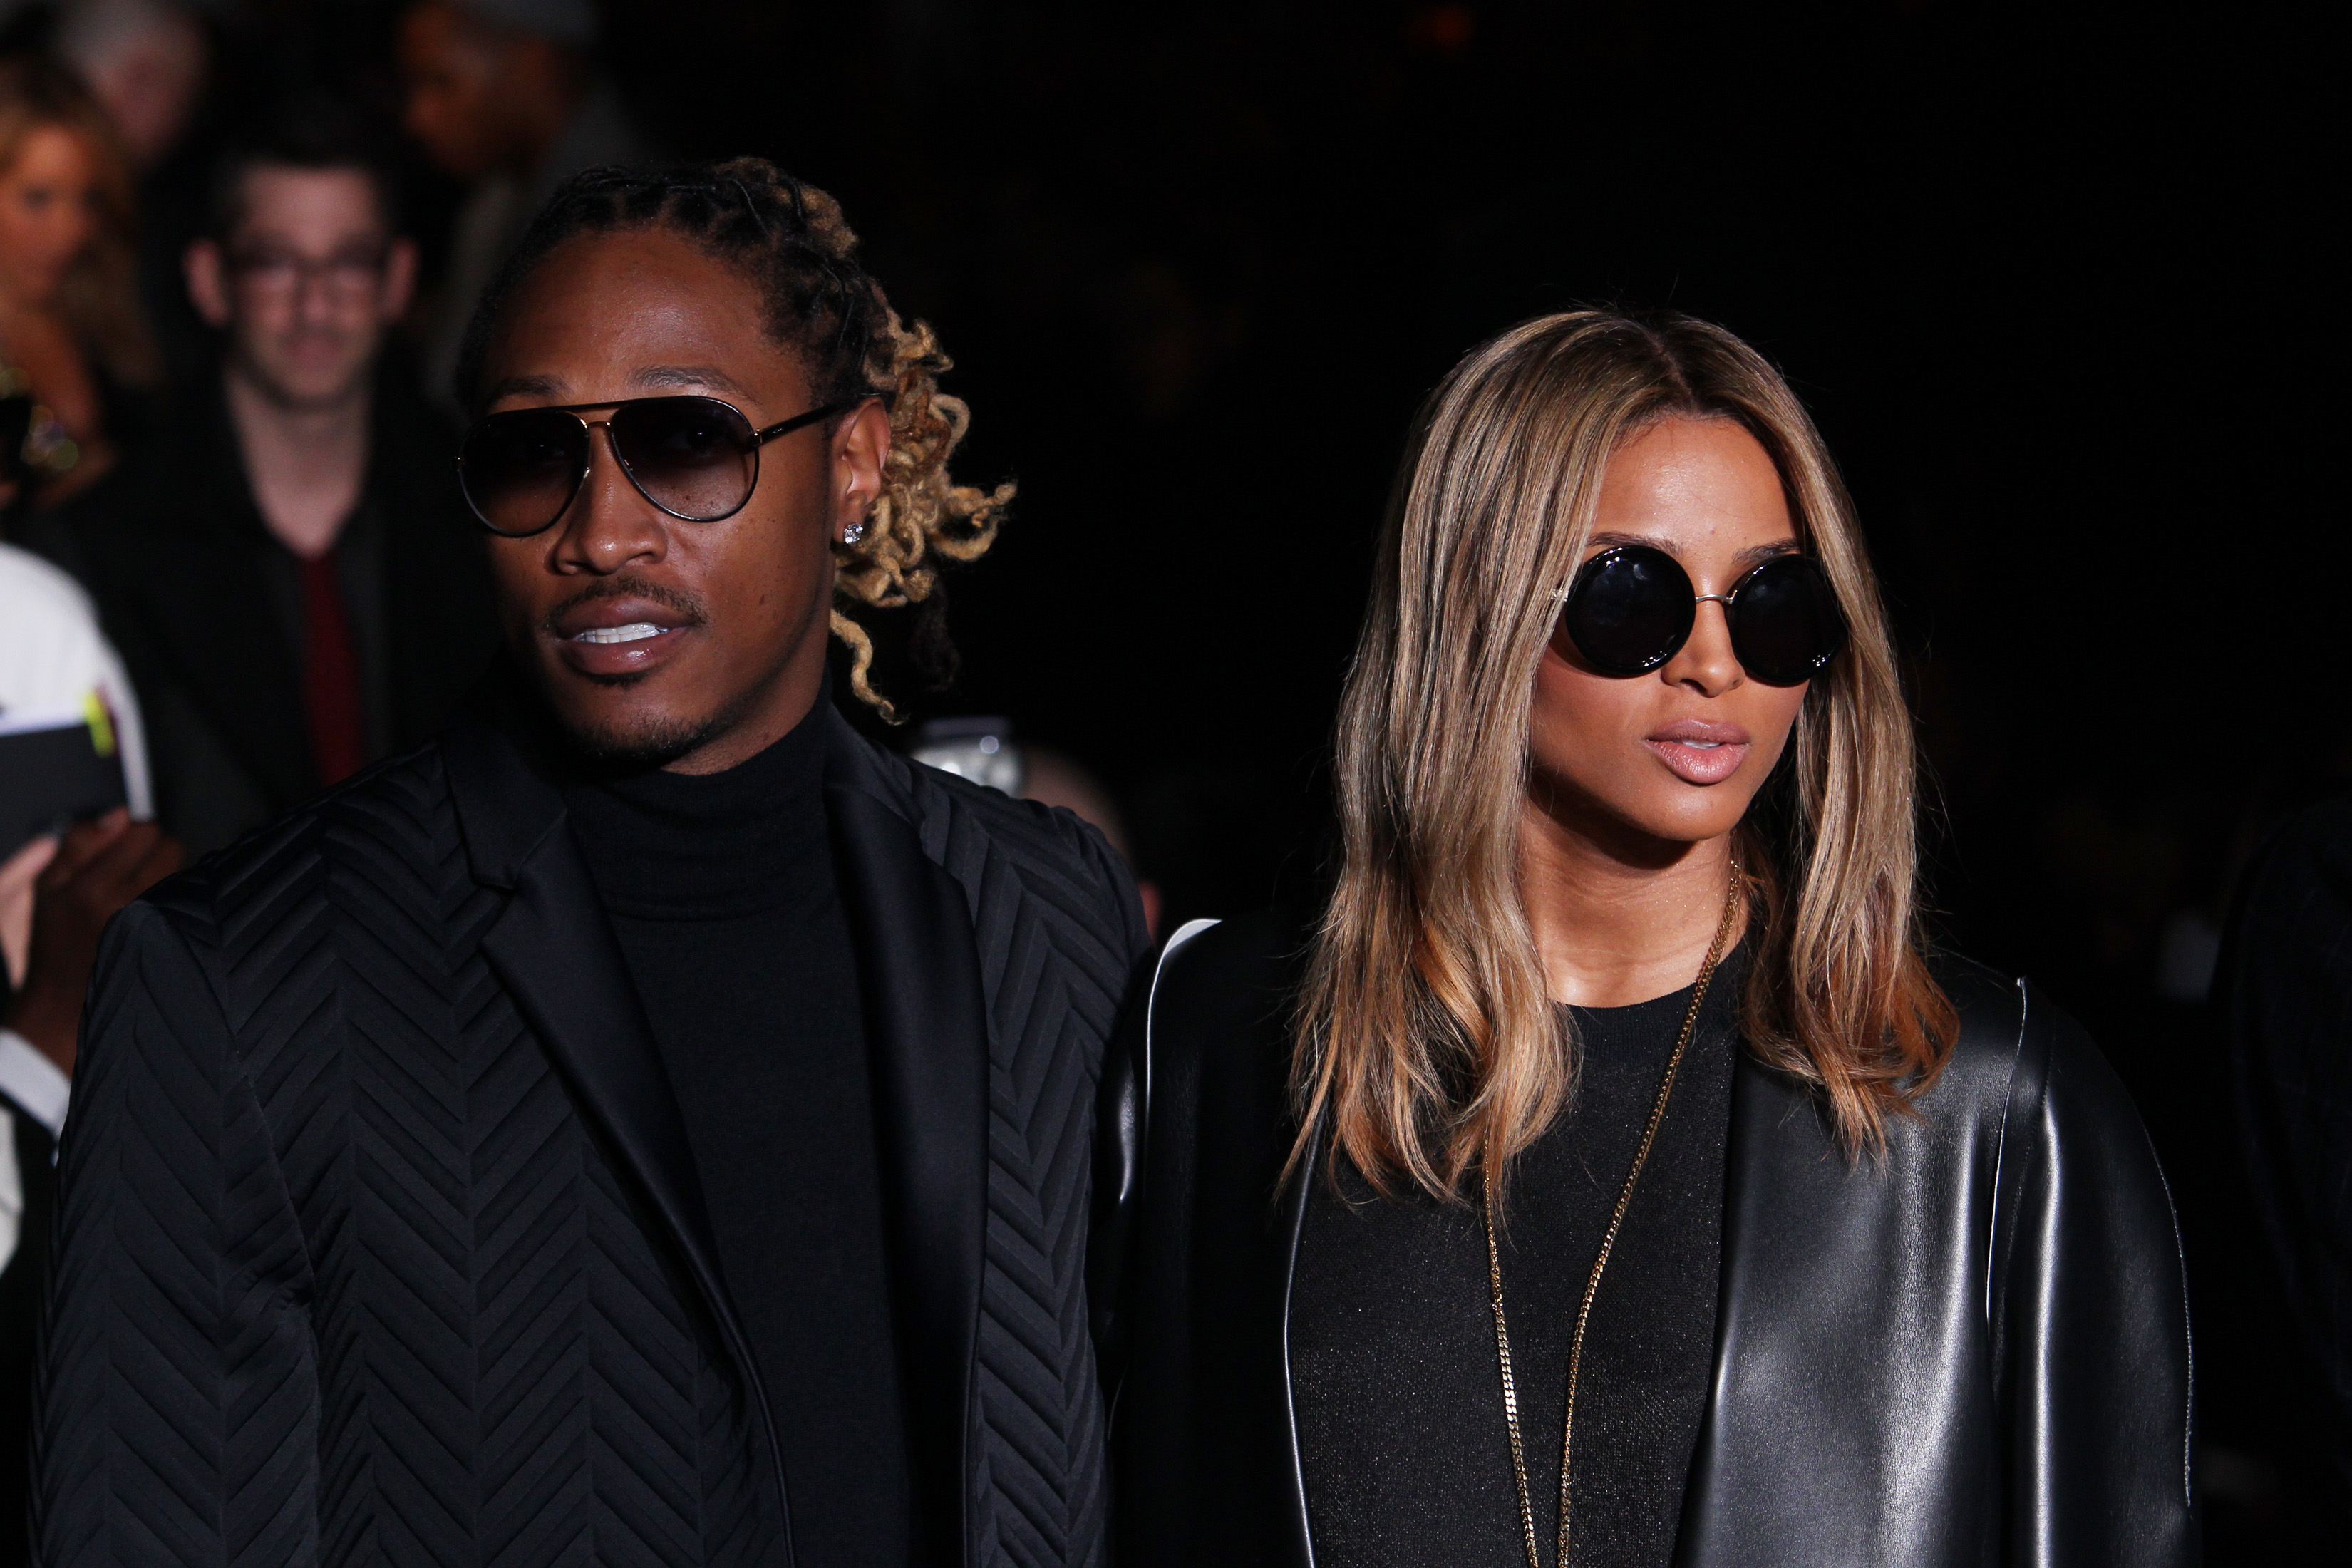 MILAN, ITALY - JANUARY 12: Future; Ciara attend the Calvin Klein Collection show as a part of Milan Fashion Week Menswear Autumn/Winter 2014 on January 12, 2014 in Milan, Italy.